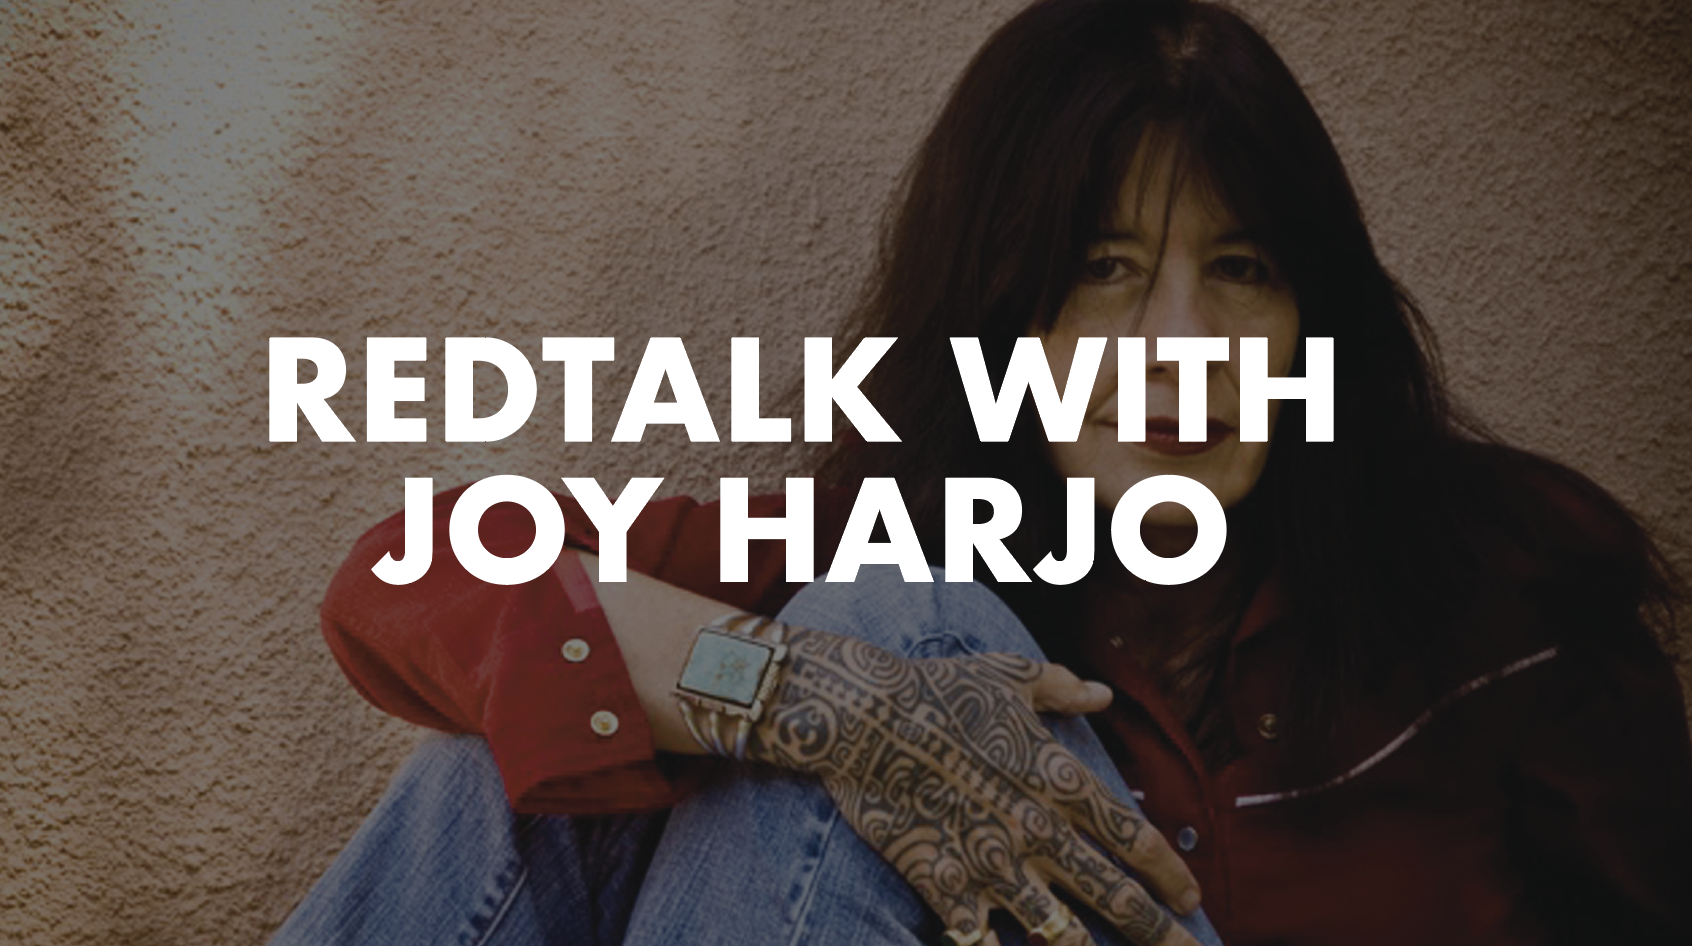 REDTalk with Joy Harjo